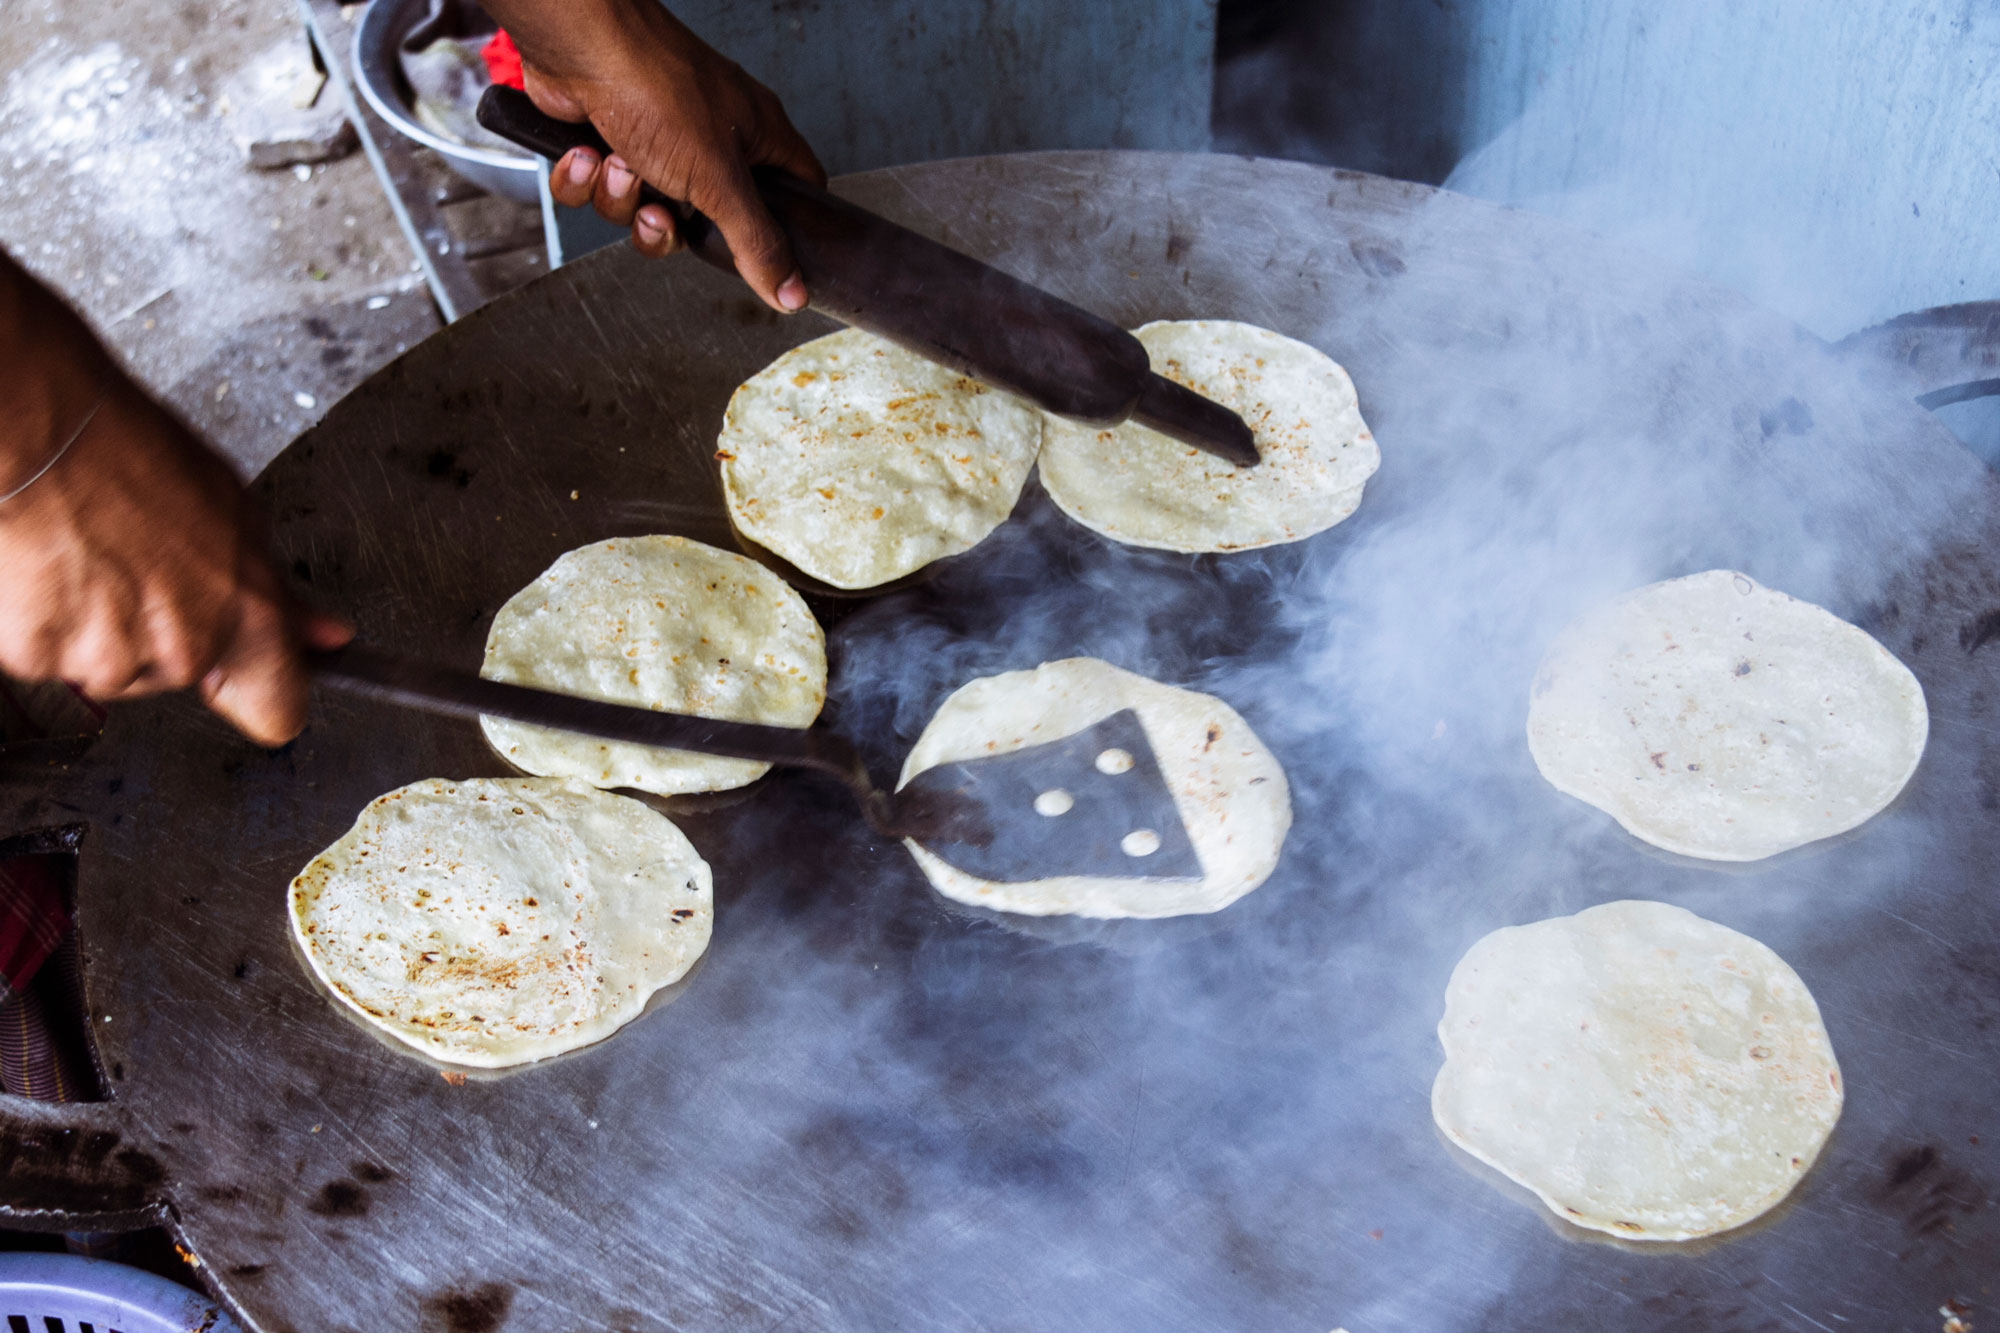 A person cooking small paratha flat bread.